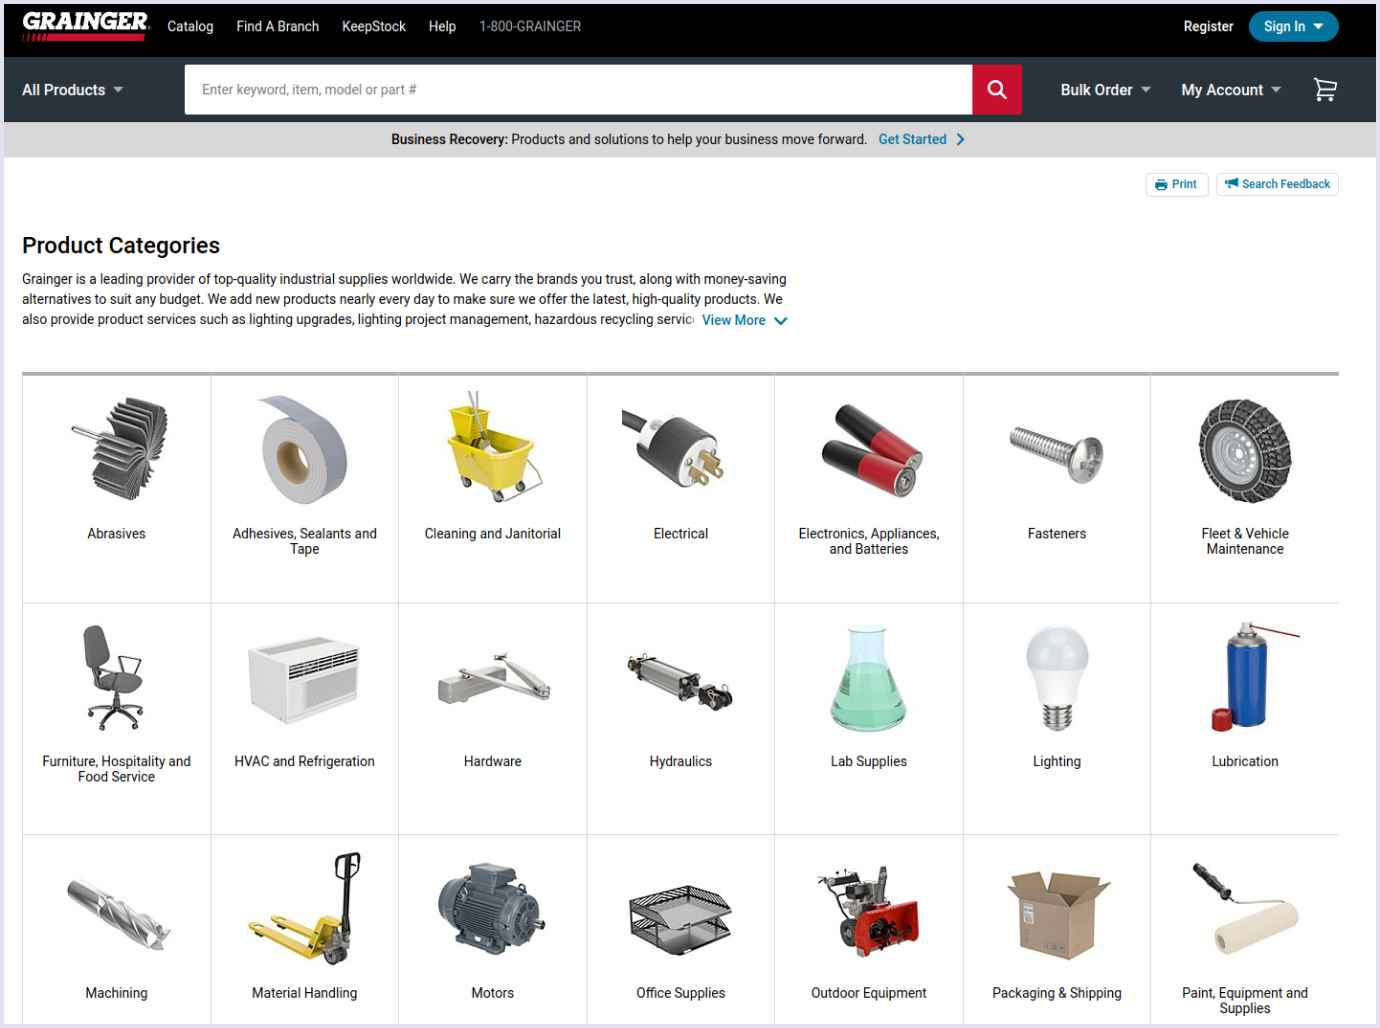 A product catalog on the B2B marketplace website Grainger